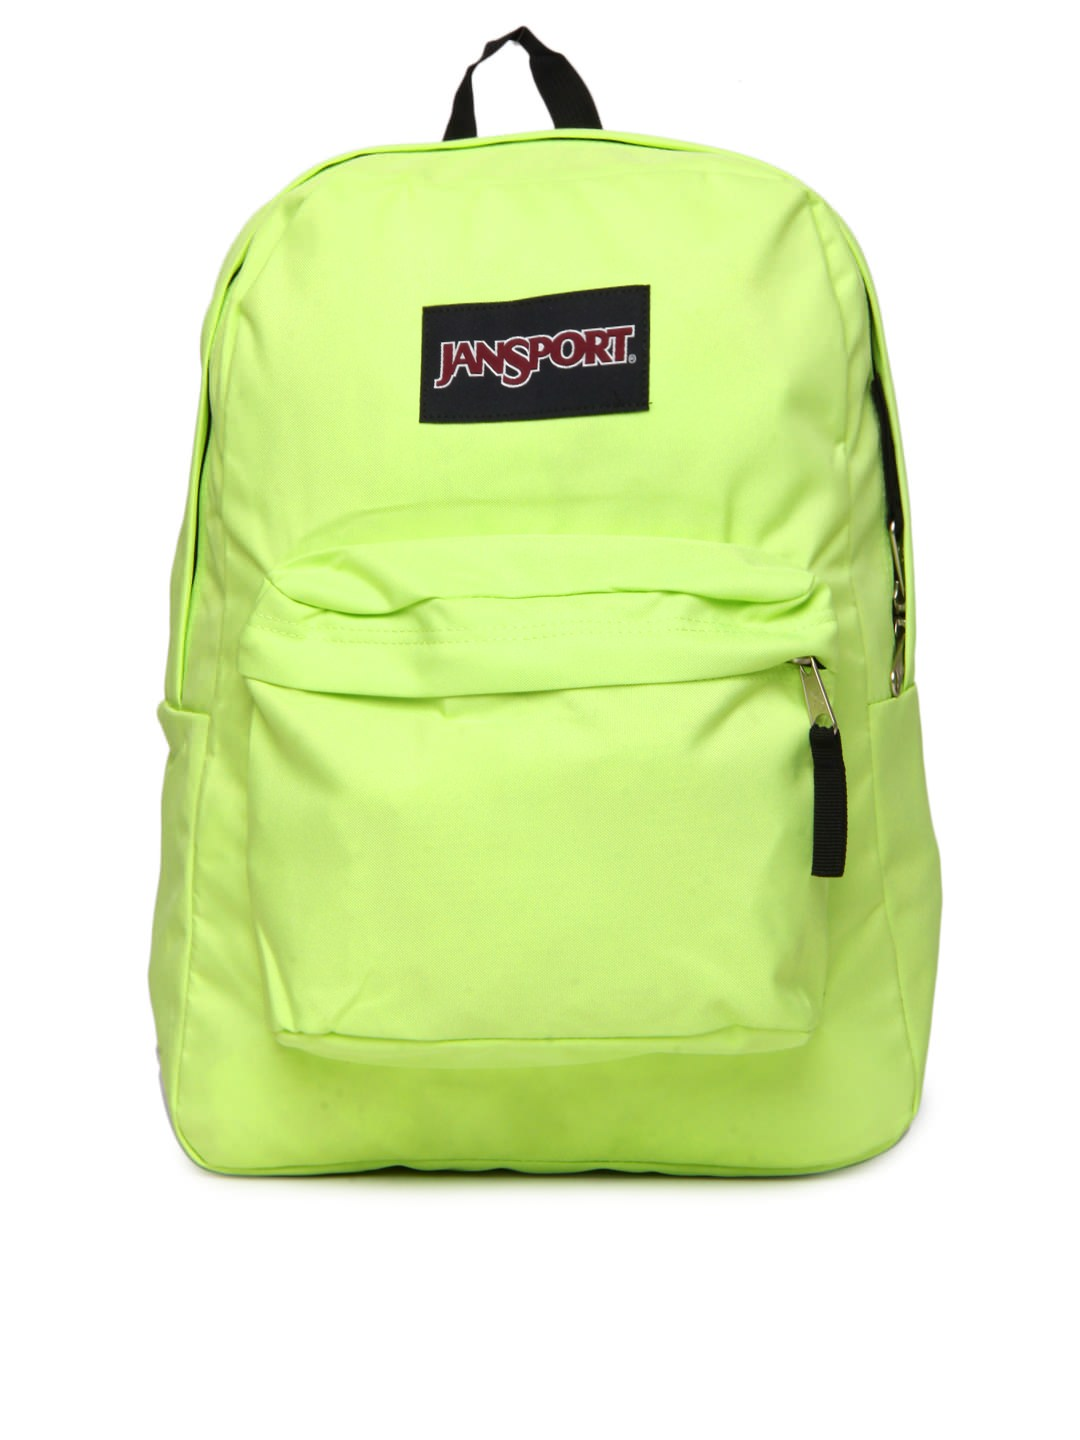 Buy Jansport Unisex Lime Green Backpack at Rs.1799